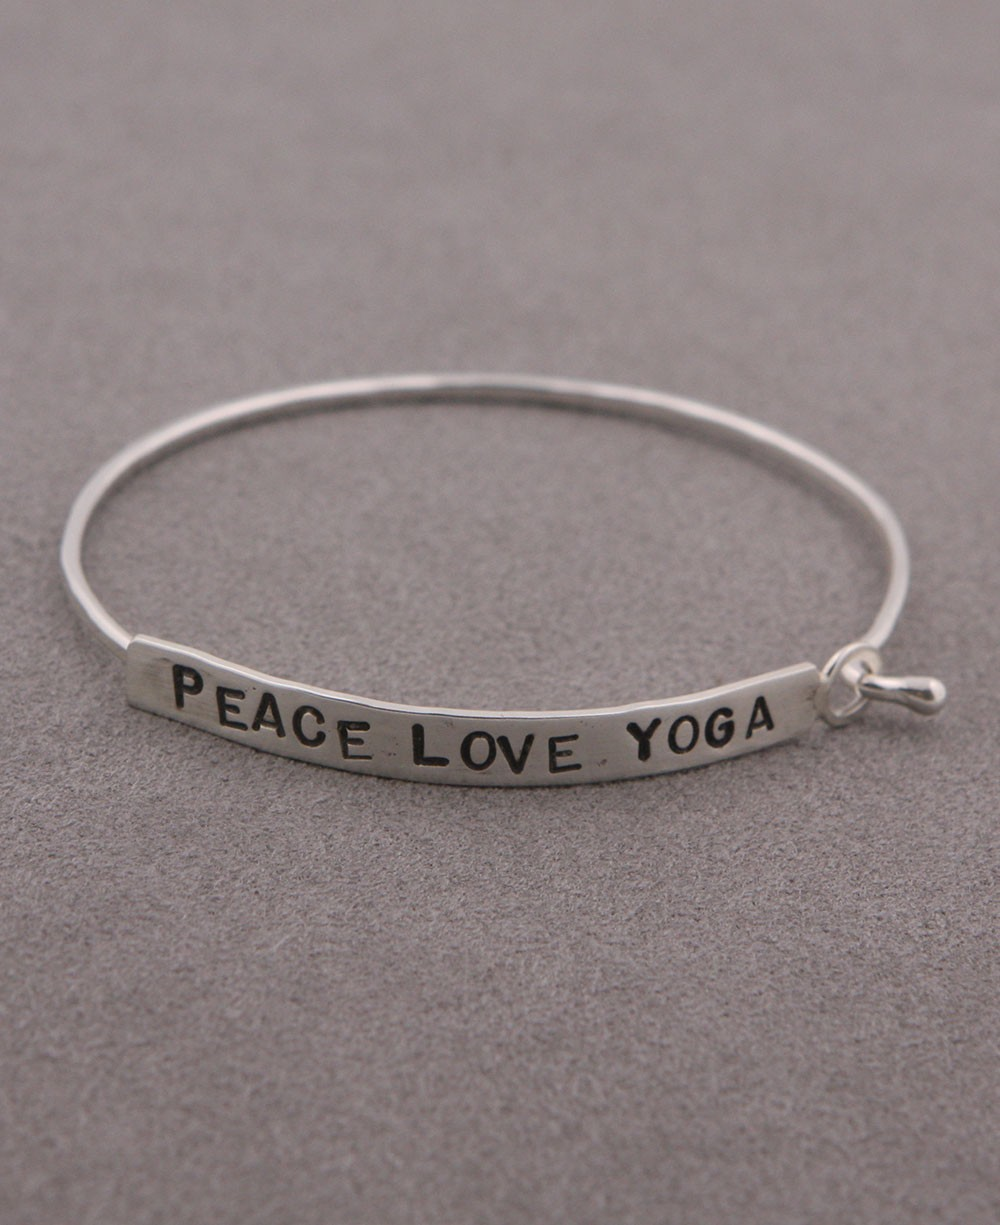 Inspirational Jewelry, Peace Love Yoga Bracelet, Silver